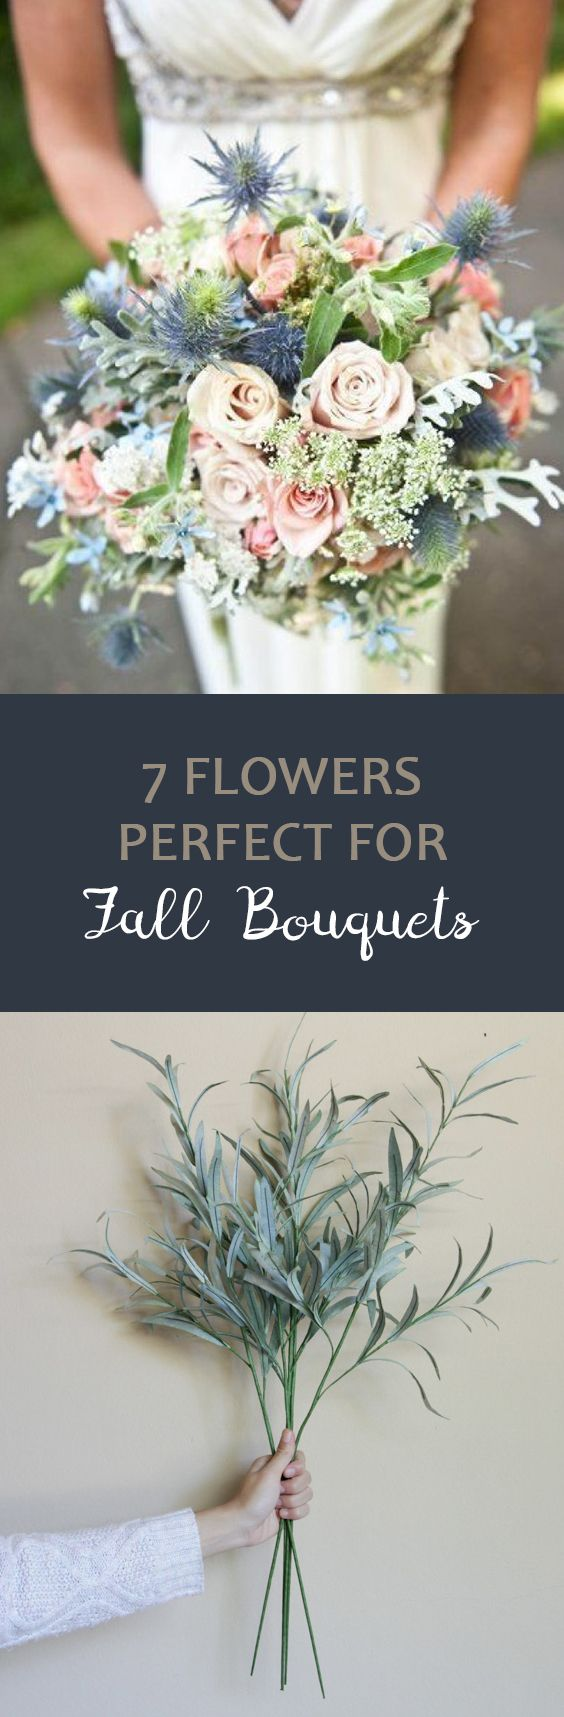 7 Flowers Perfect For Fall Bouquets Fall Wedding Pinterest